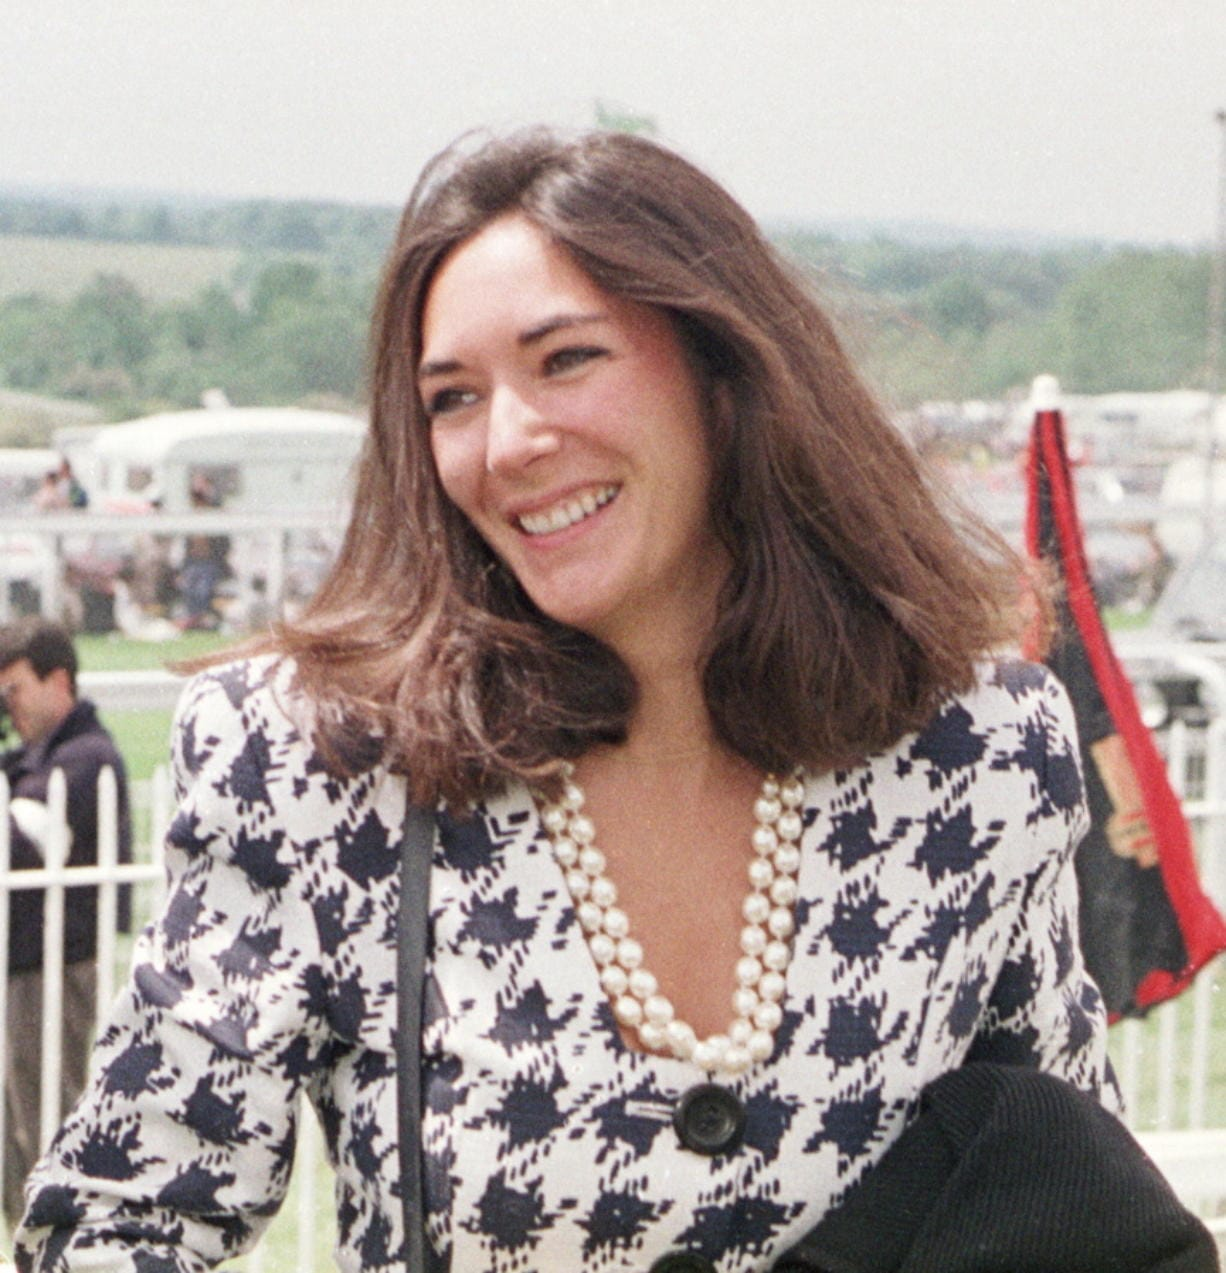 FILE - In this June 5, 1991 file photo, British socialite Ghislaine Maxwell arrives at Epsom Racecourse. Jeffrey Epstein's former girlfriend will face a judge and at least one of her accusers by video at a hearing to determine whether she stays behind bars until trial on charges she recruited girls for the financier to sexually abuse a quarter-century before he killed himself in a Manhattan jail. The hearing Tuesday, July 14, 2020, in Manhattan federal court was expected to feature a not guilty plea by Maxwell along with arguments over whether she'll flee if she's released.